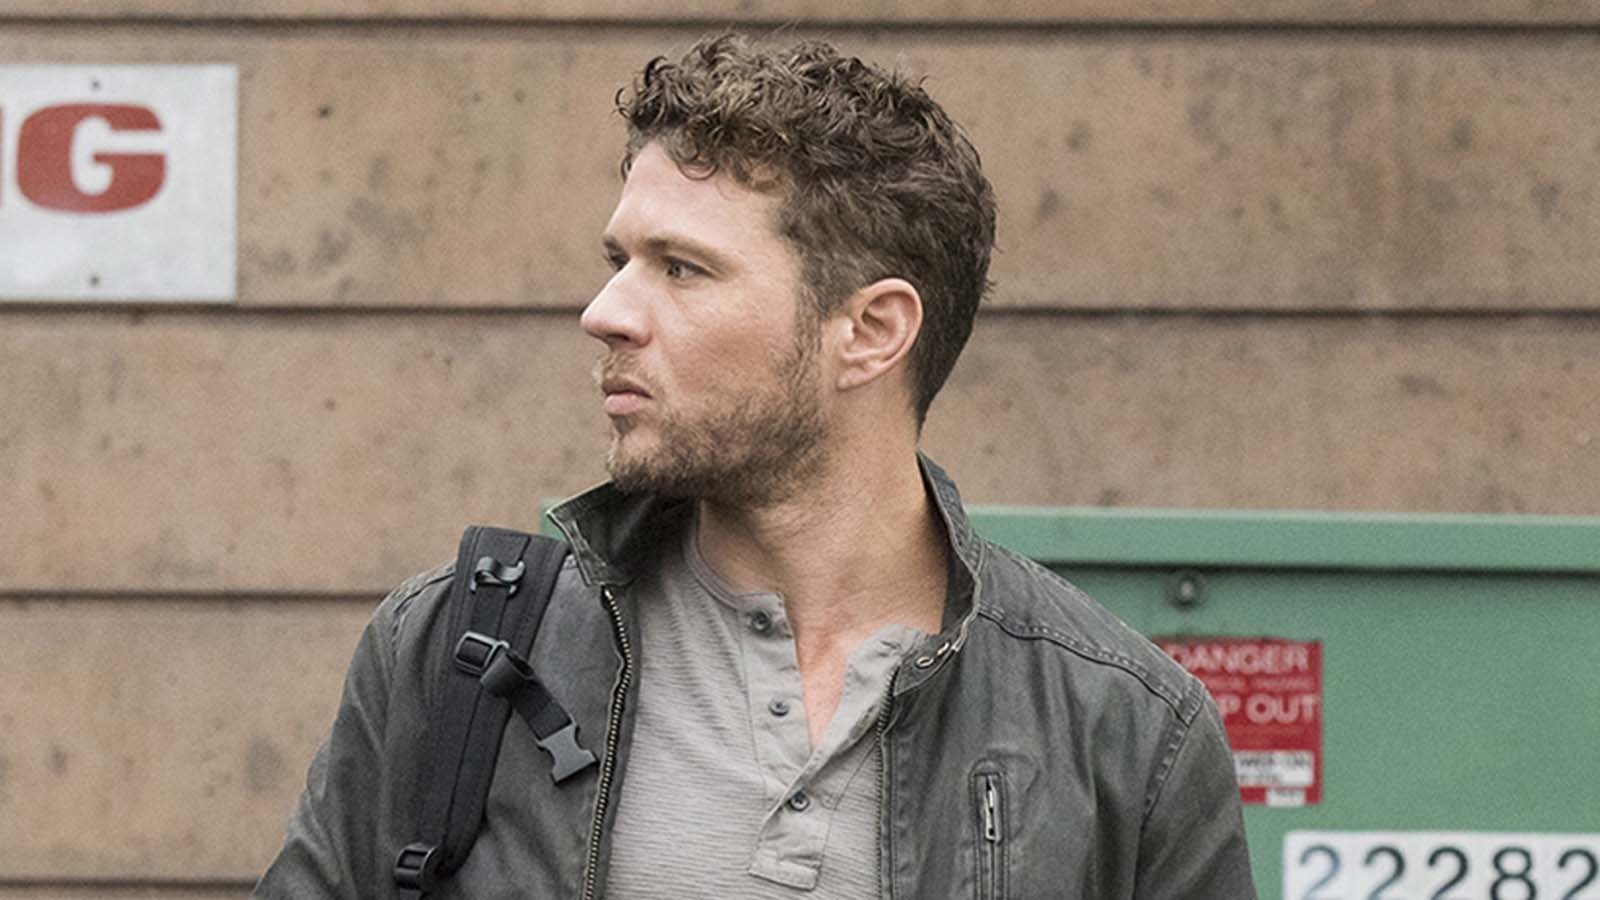 Ryan Phillippe hospitalized after breaking leg in